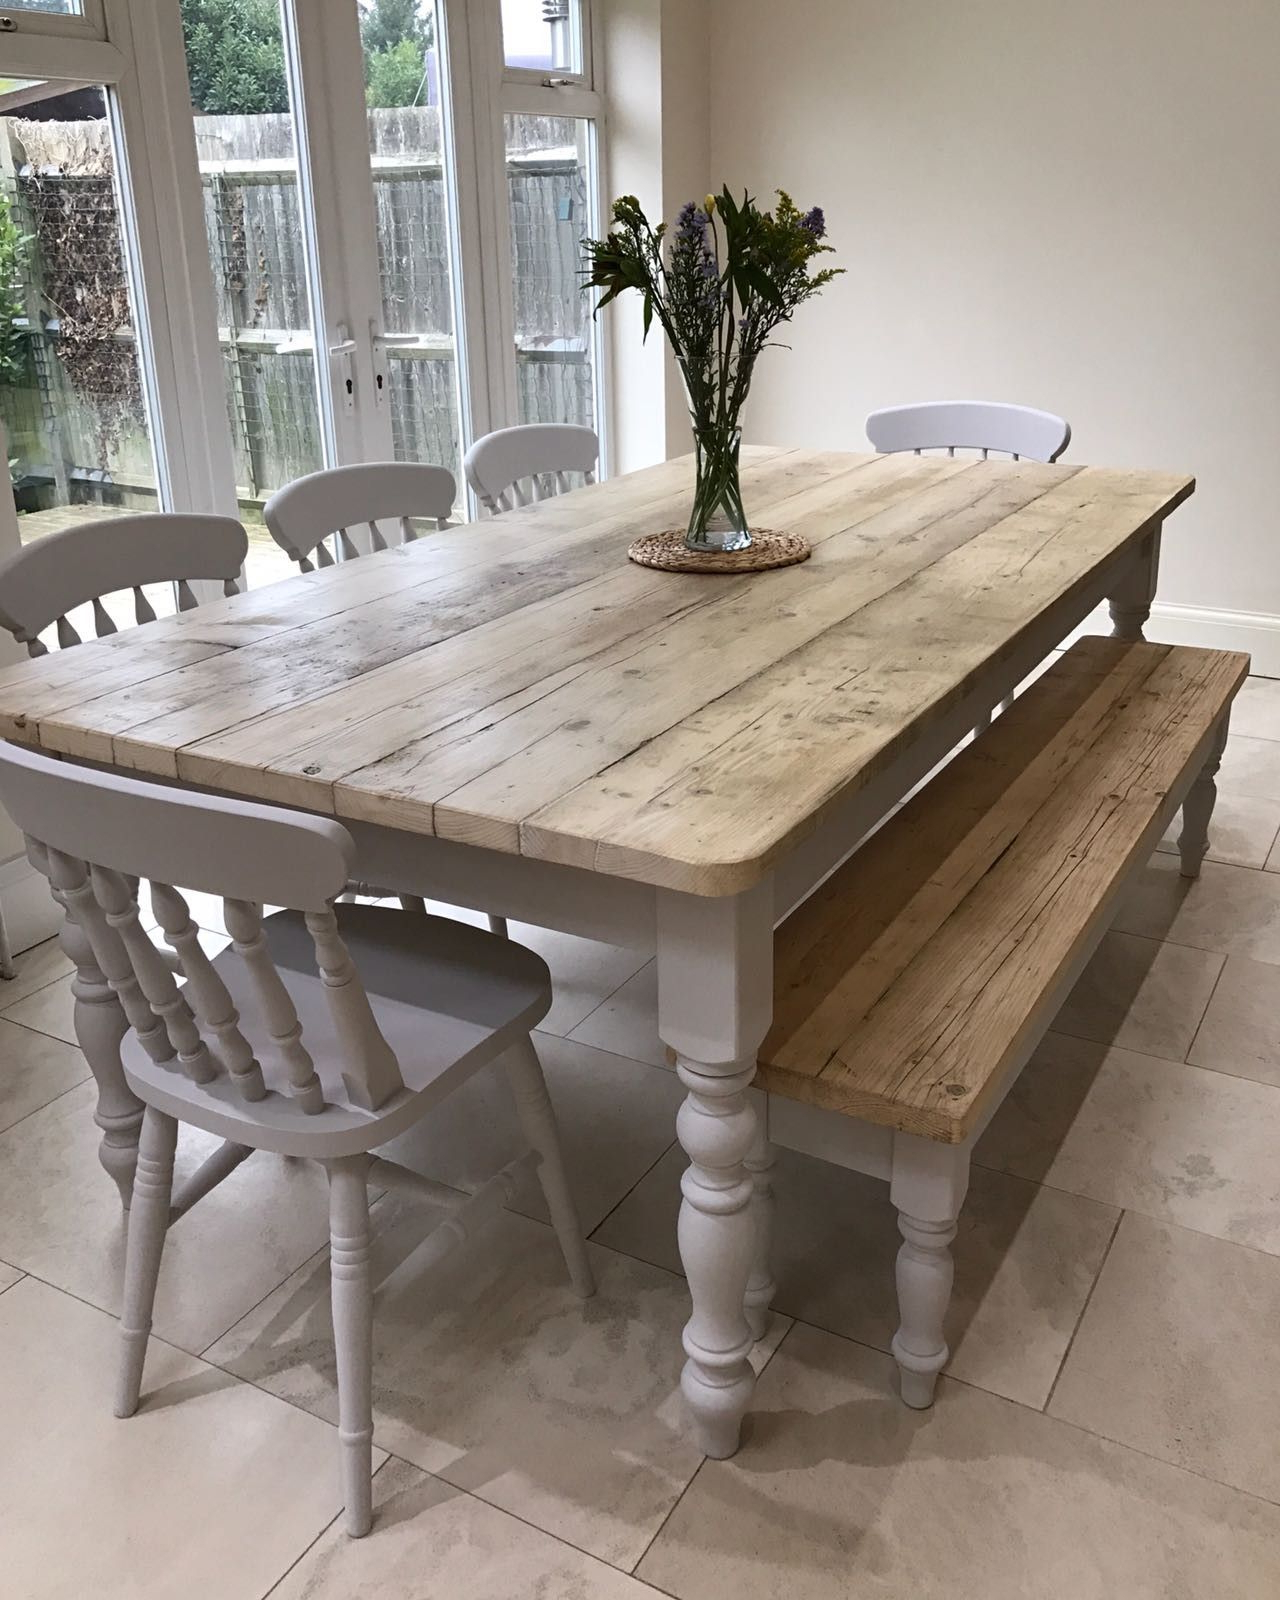 The Florence Clear' Table Made From Reclaimed Wood Throughout Well Liked Distressed Grey Finish Wood Classic Design Dining Tables (View 3 of 25)